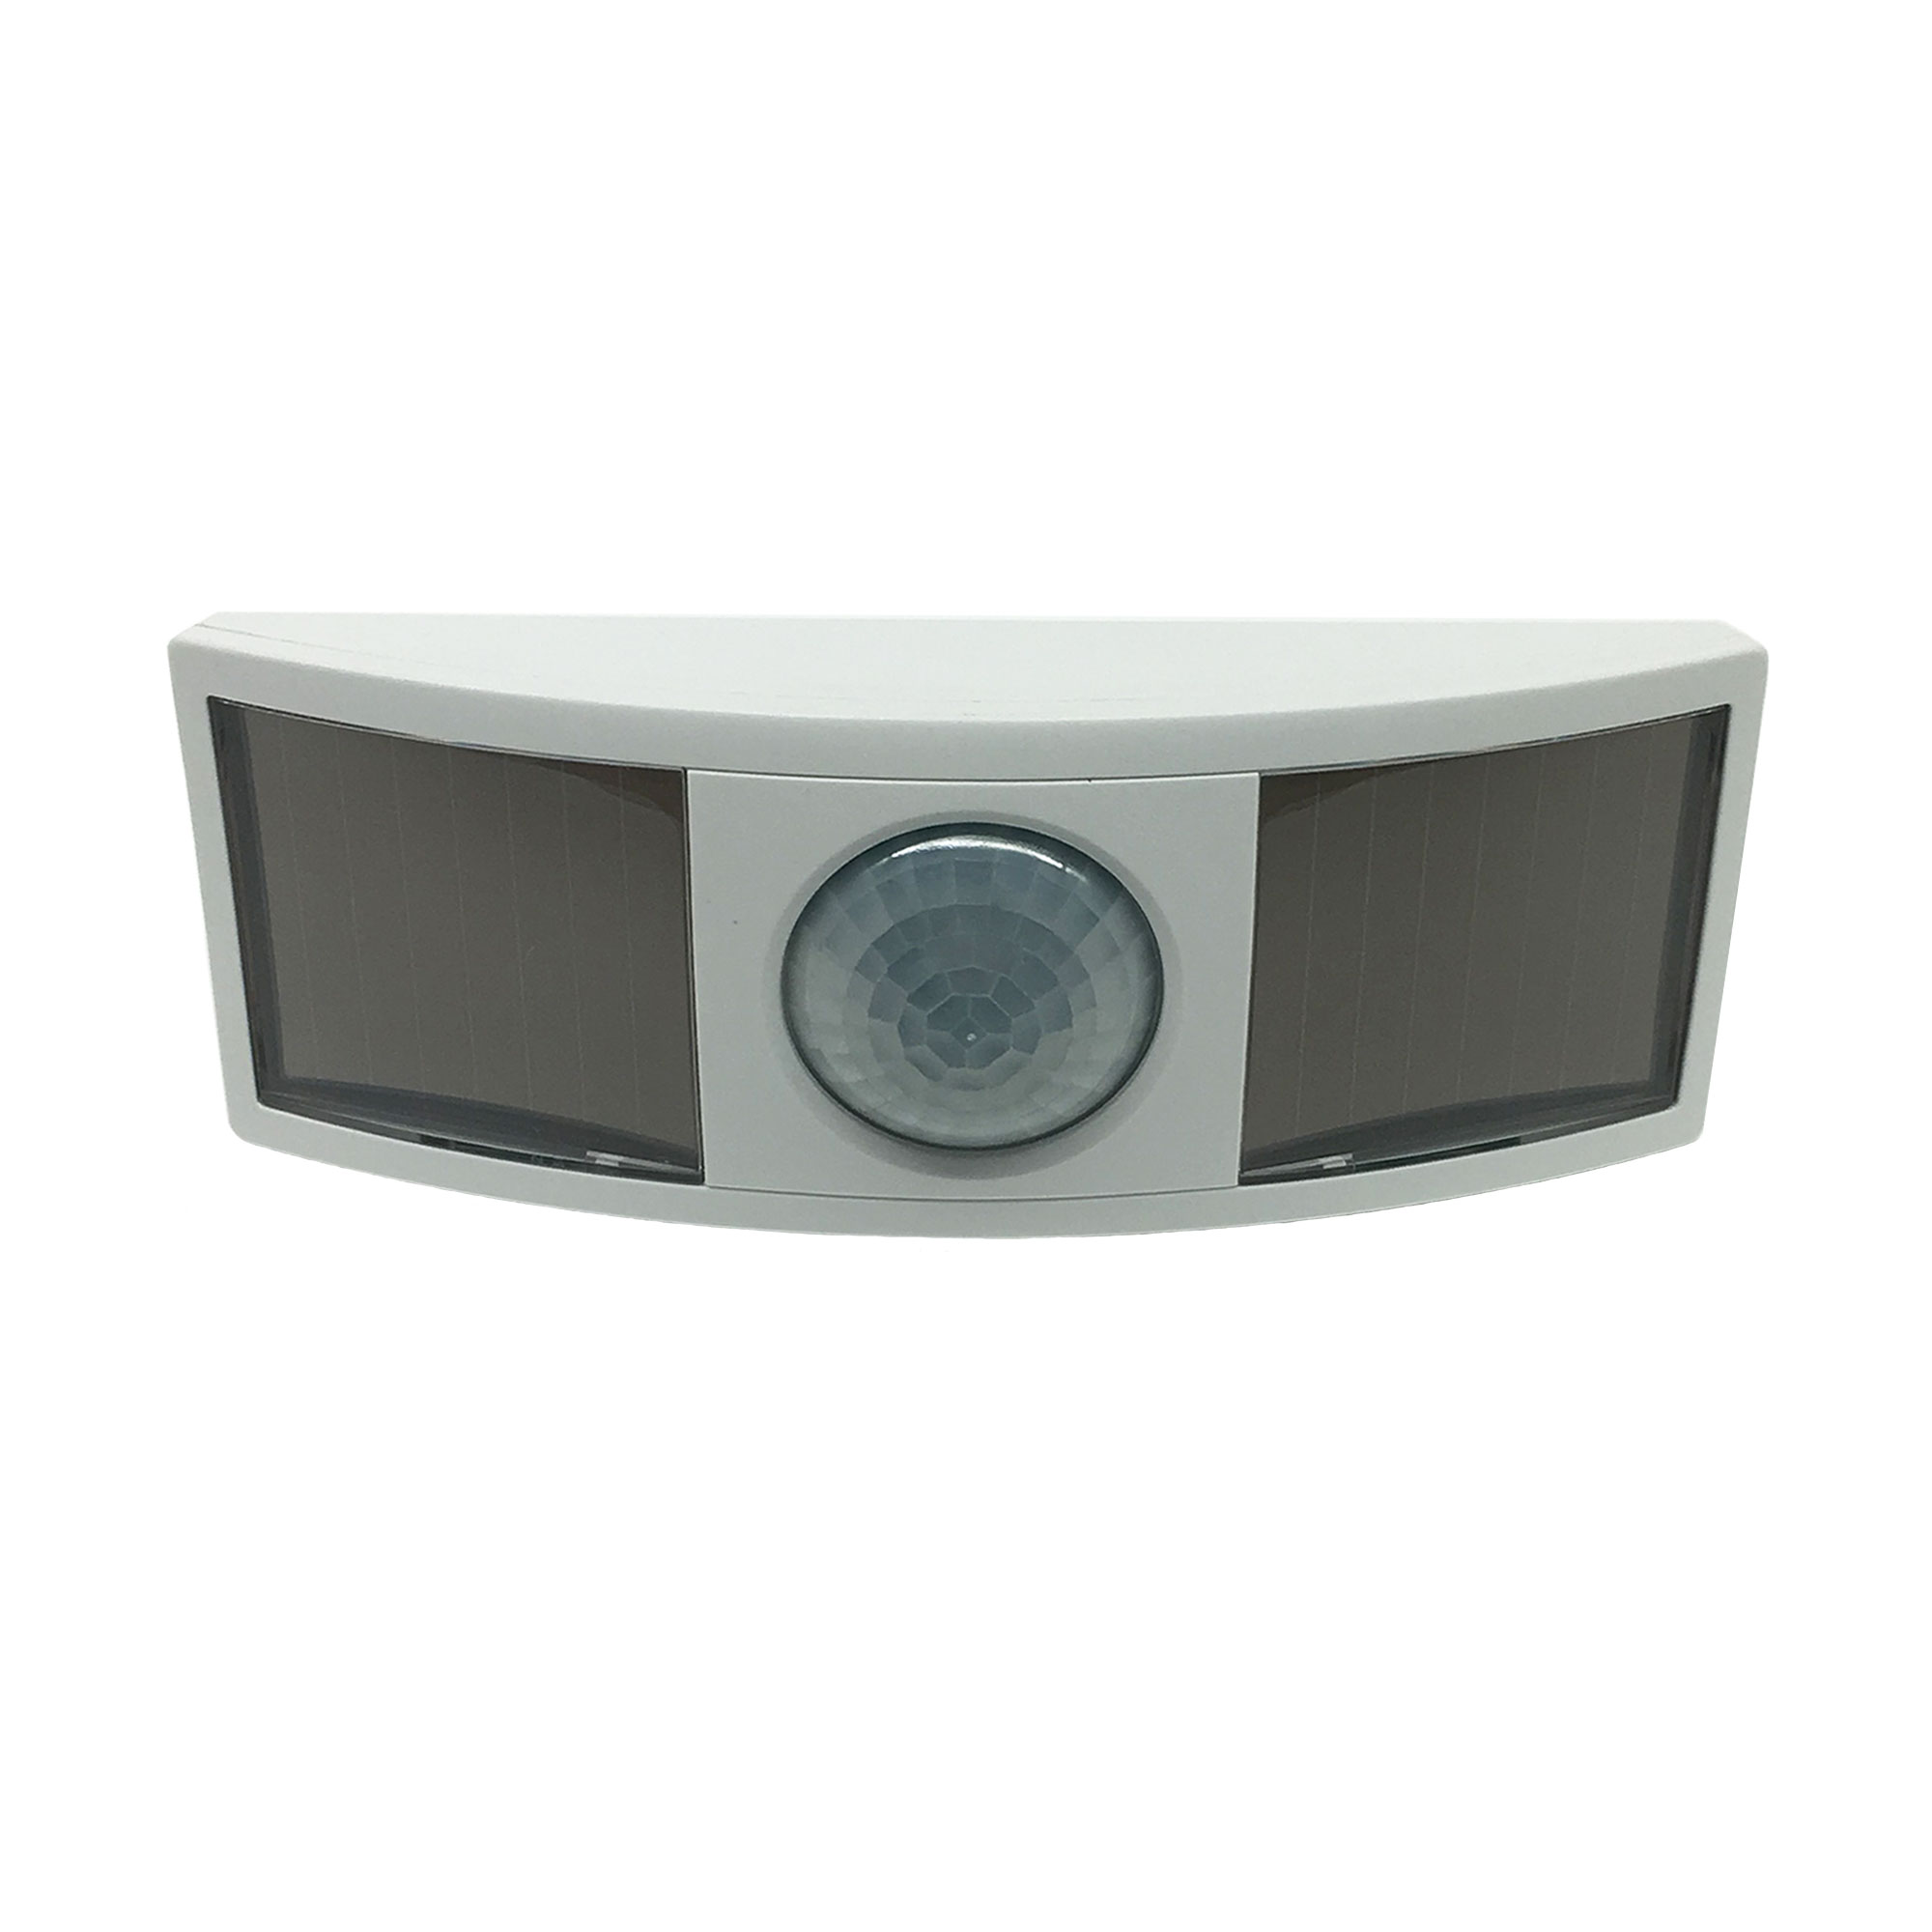 Wireless Occupancy Sensor (Ceiling Mount)